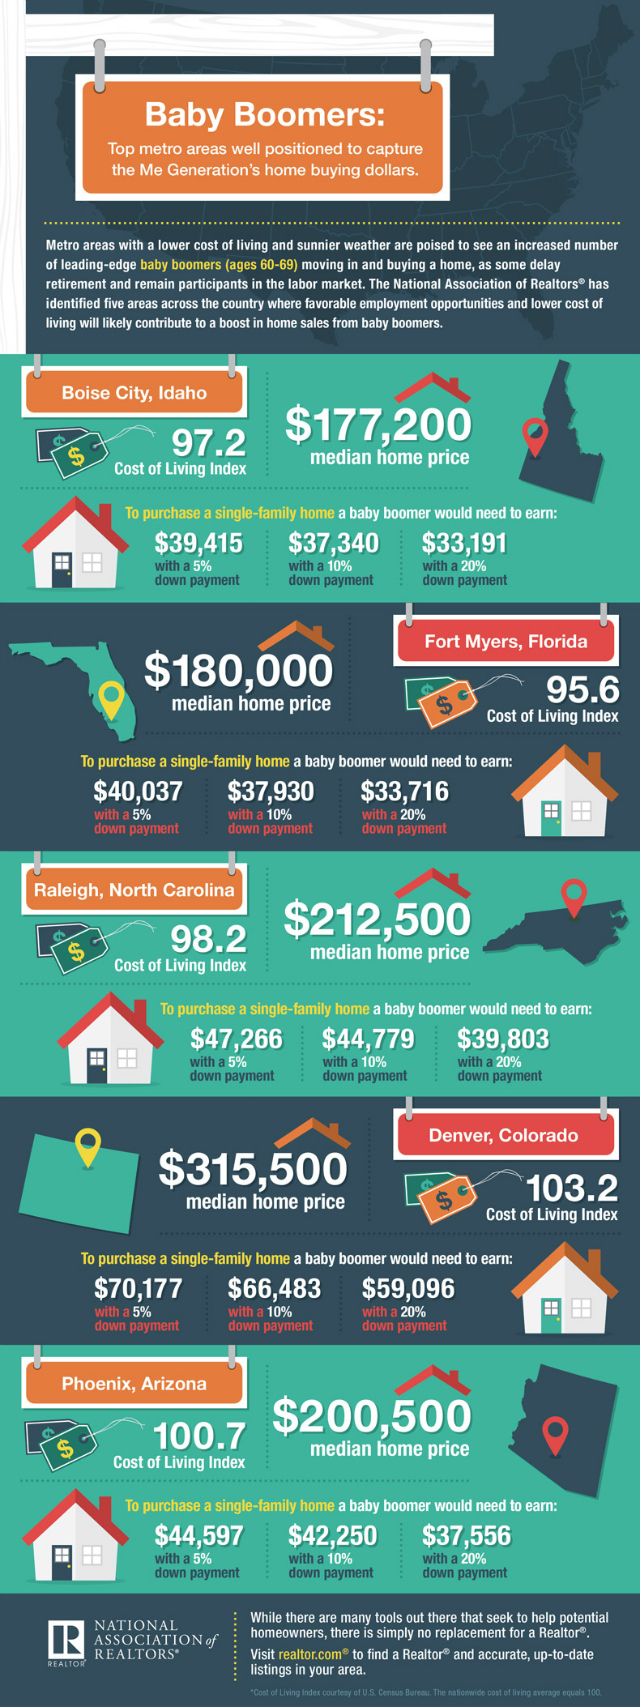 infographic top metro areas for baby boomers